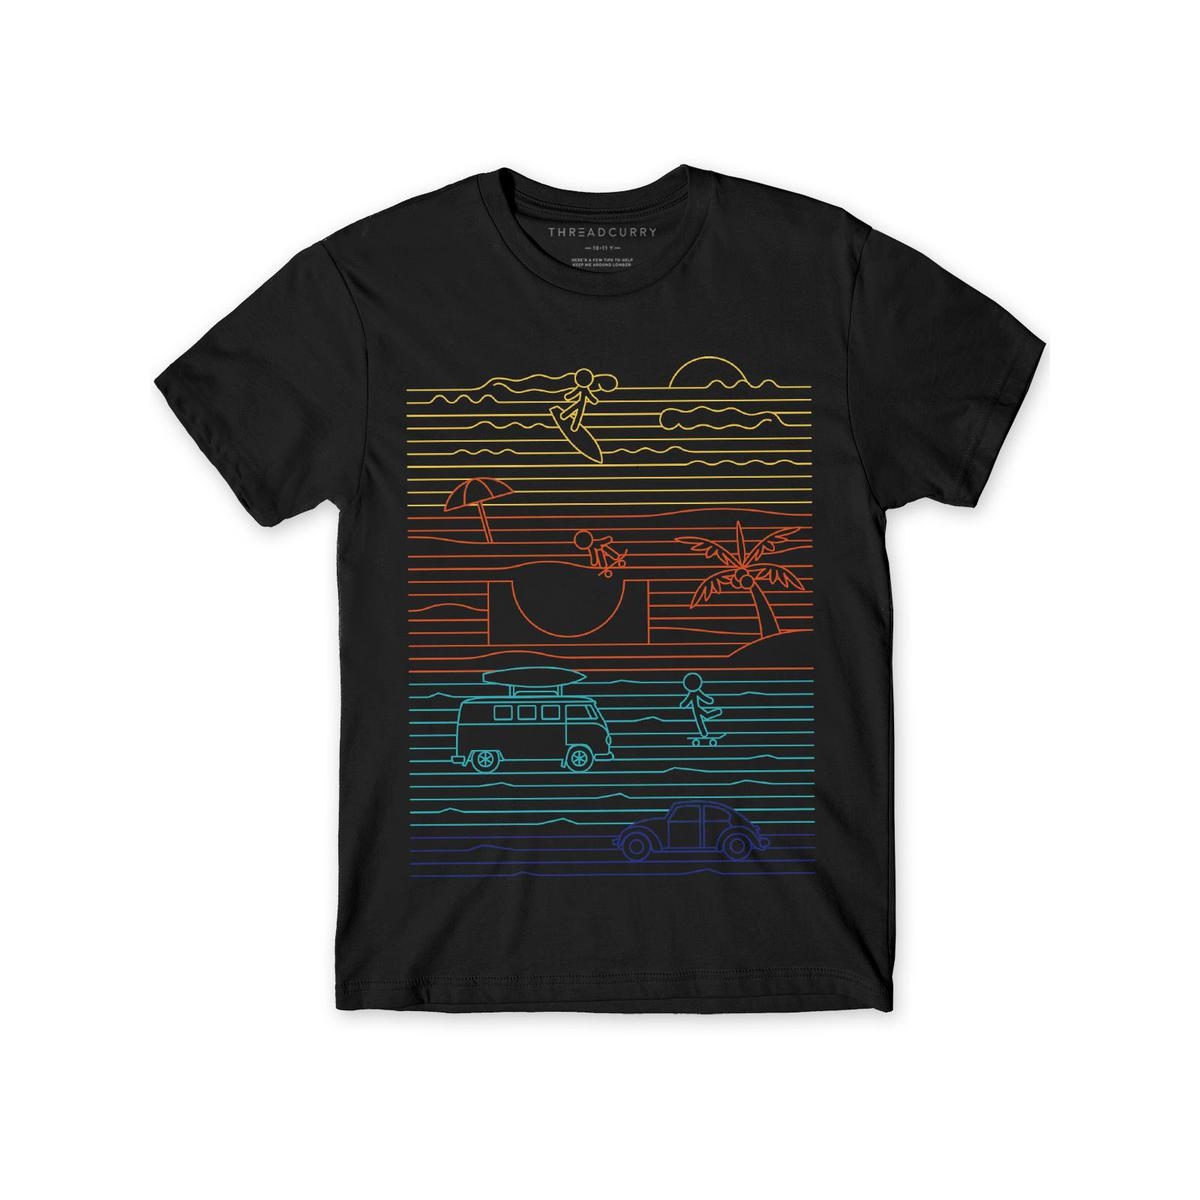 THREADCURRY - Black Colored Summer Lines   Holiday Summer Beach Travel Cotton Graphic Printed T-shirt for Boys